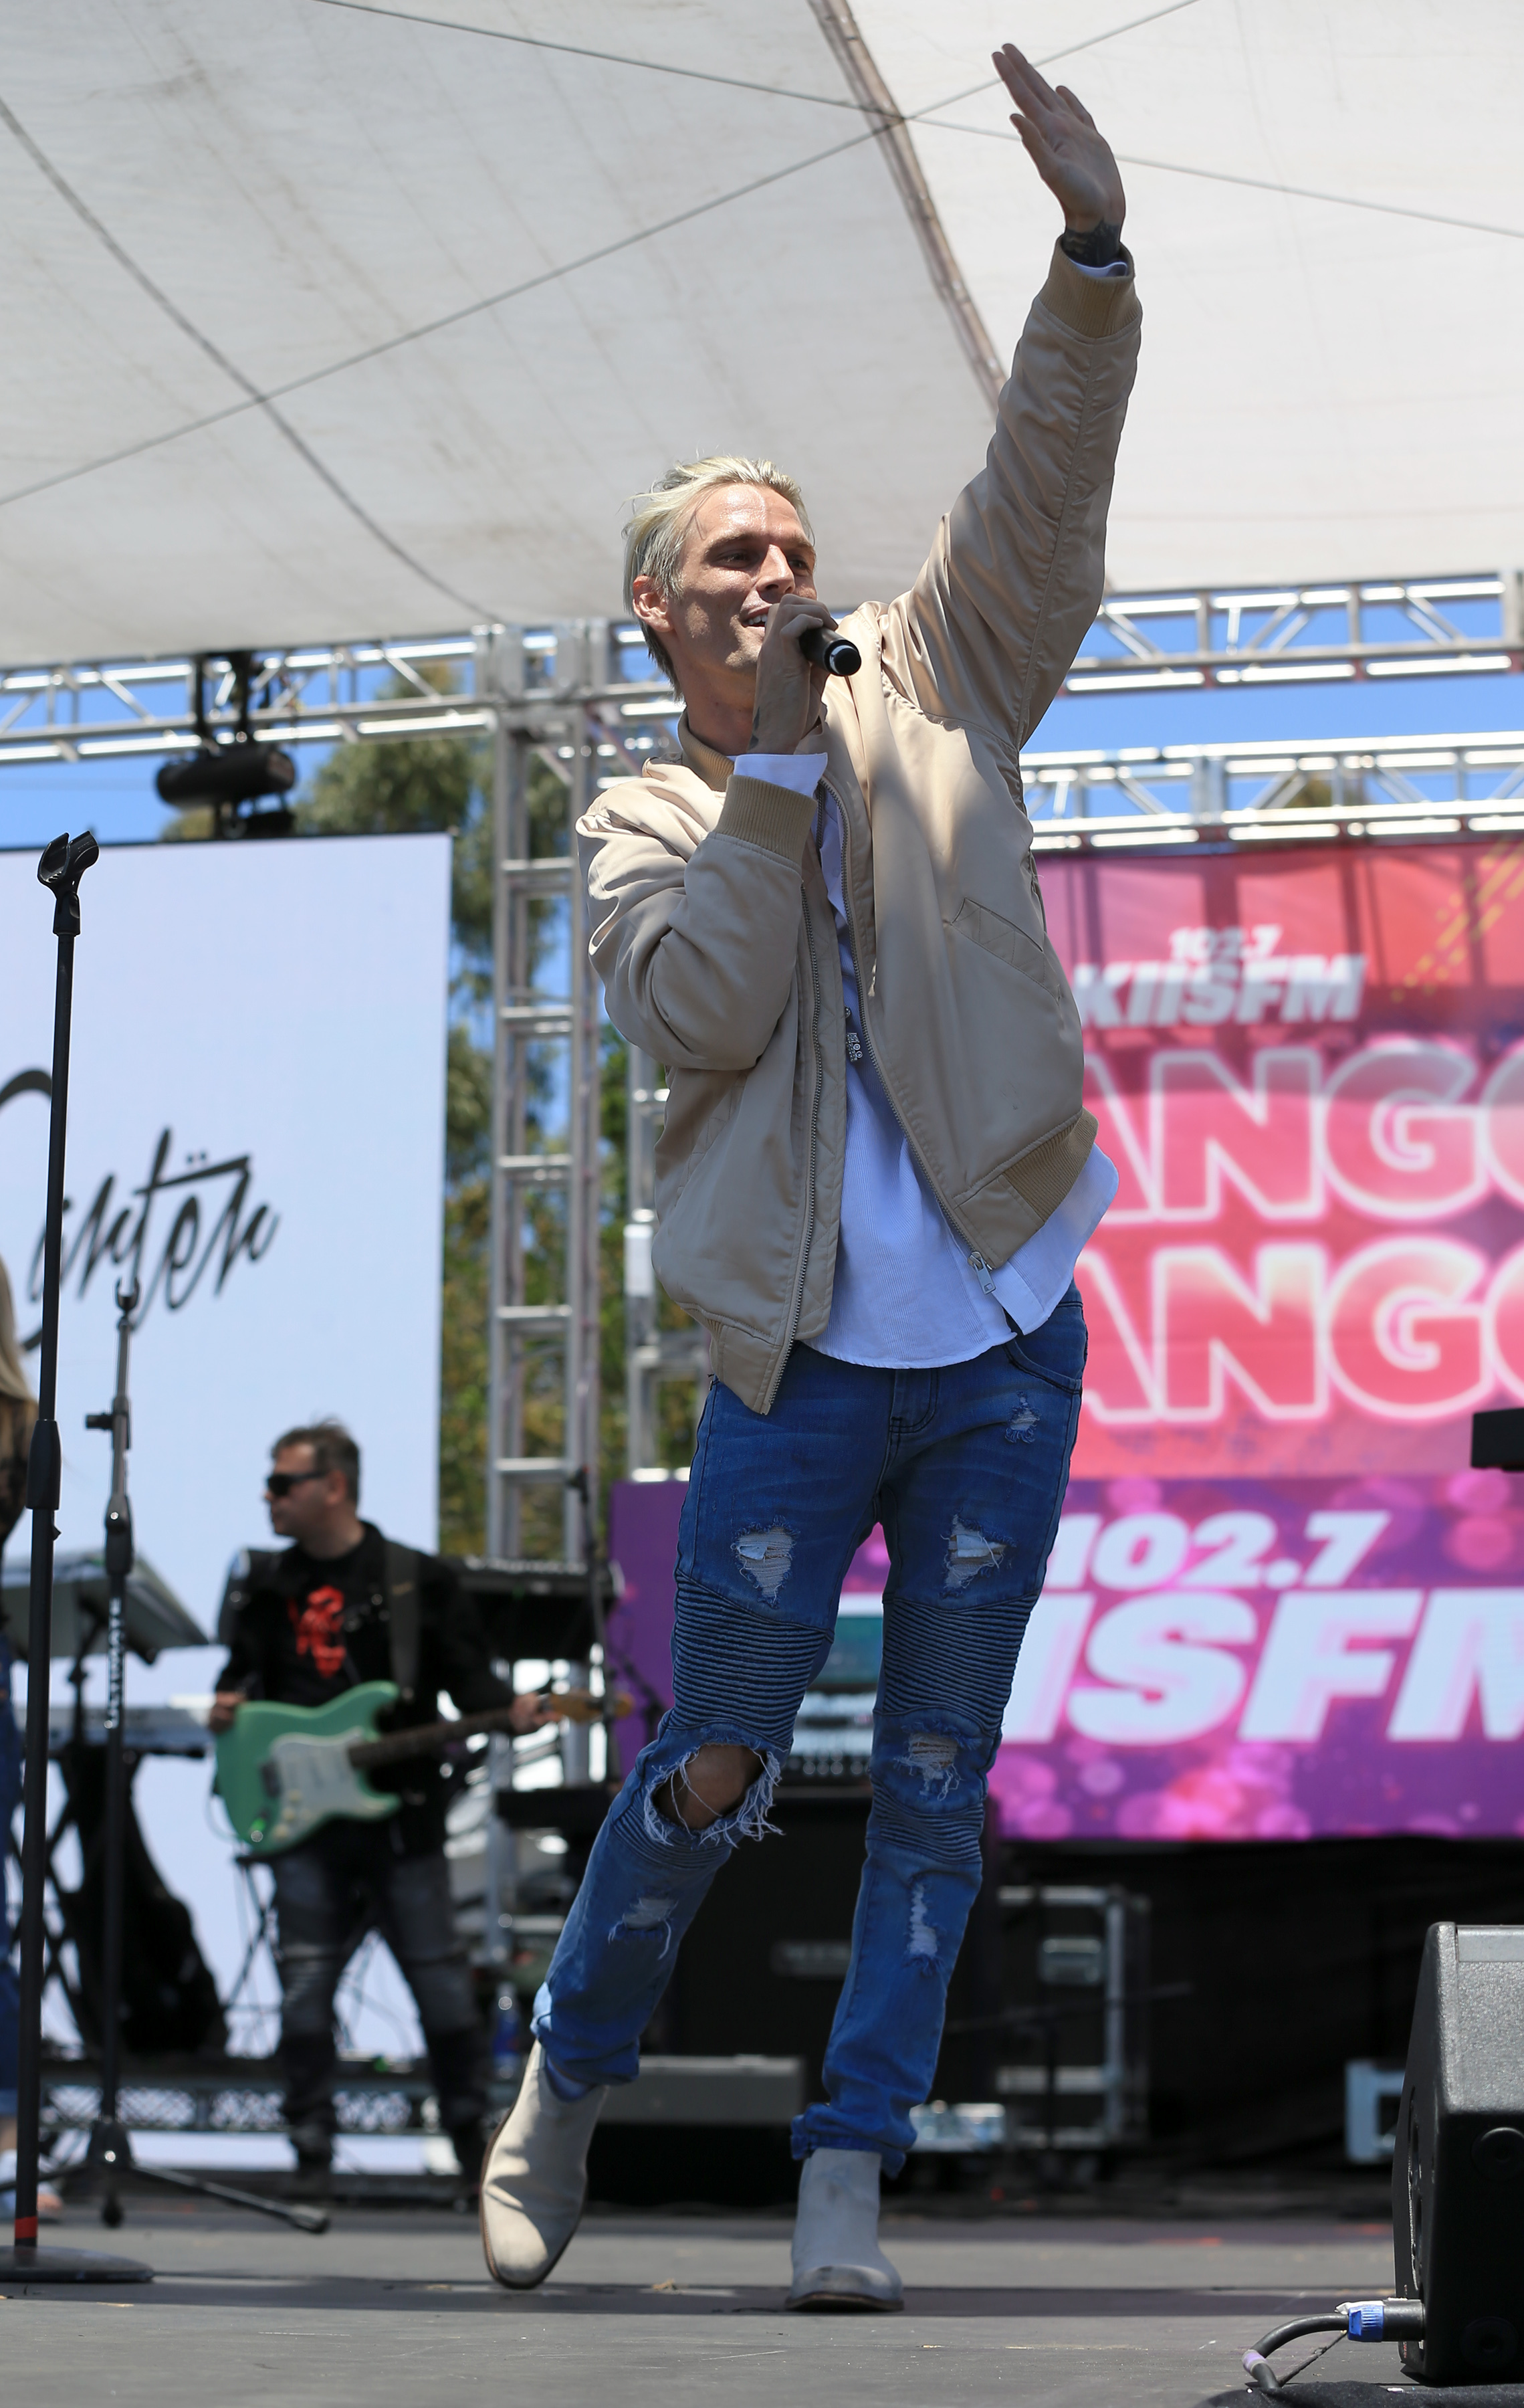 Aaron Carter at 102.7 KIIS FM's 2017 Wango Tango Show in Carson, California on May 13, 2017.  (FayesVision/WENN.com)